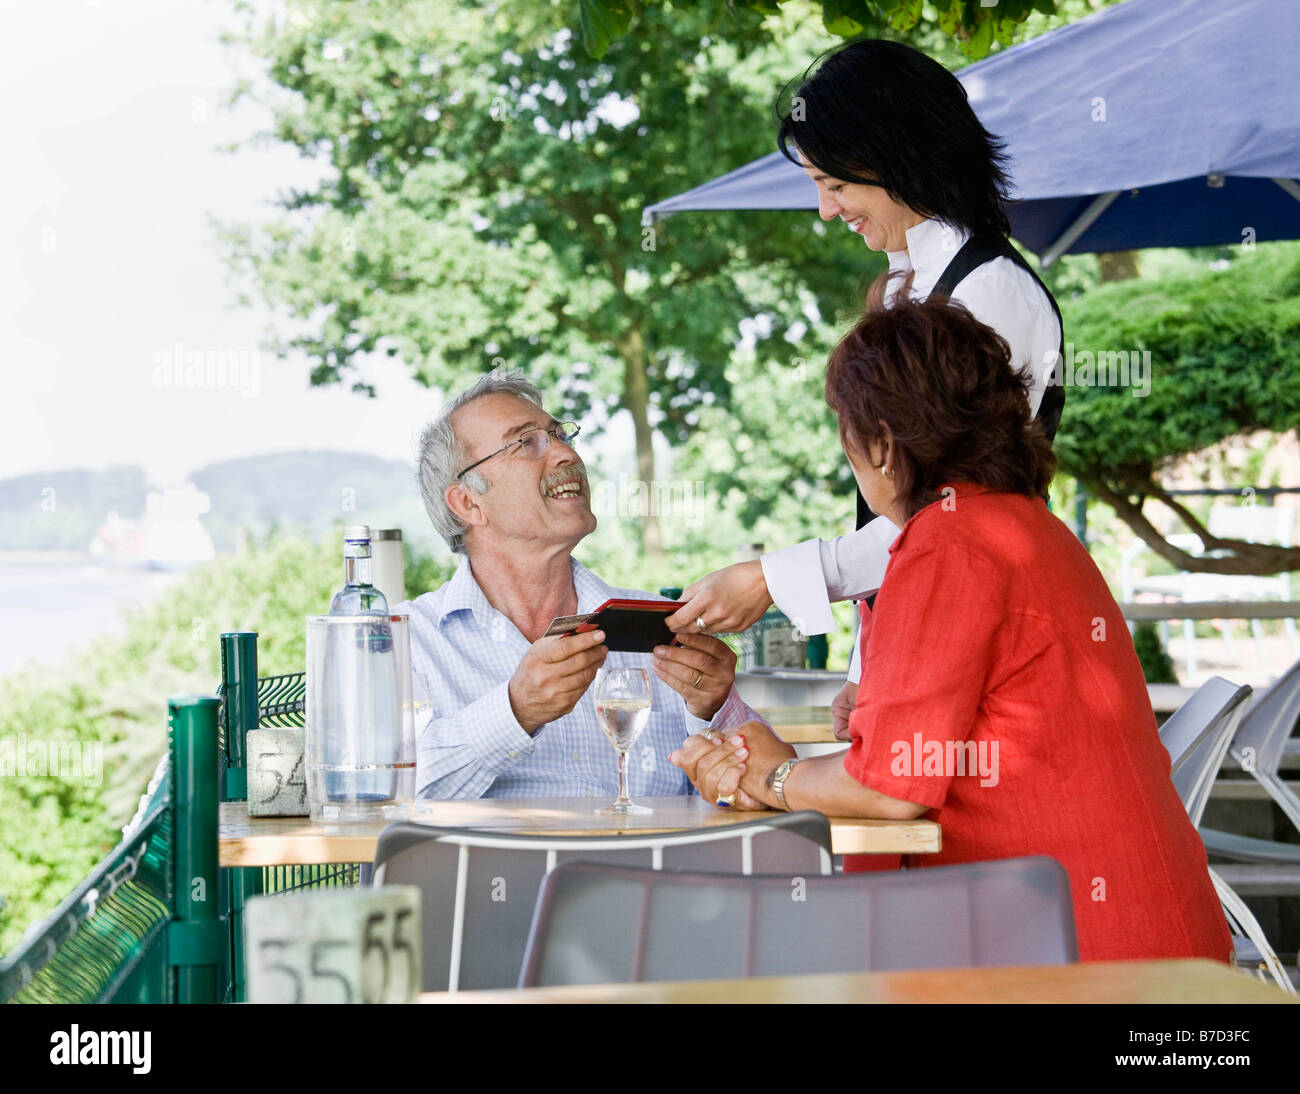 Waitress bringing the bill to the table - Stock Image